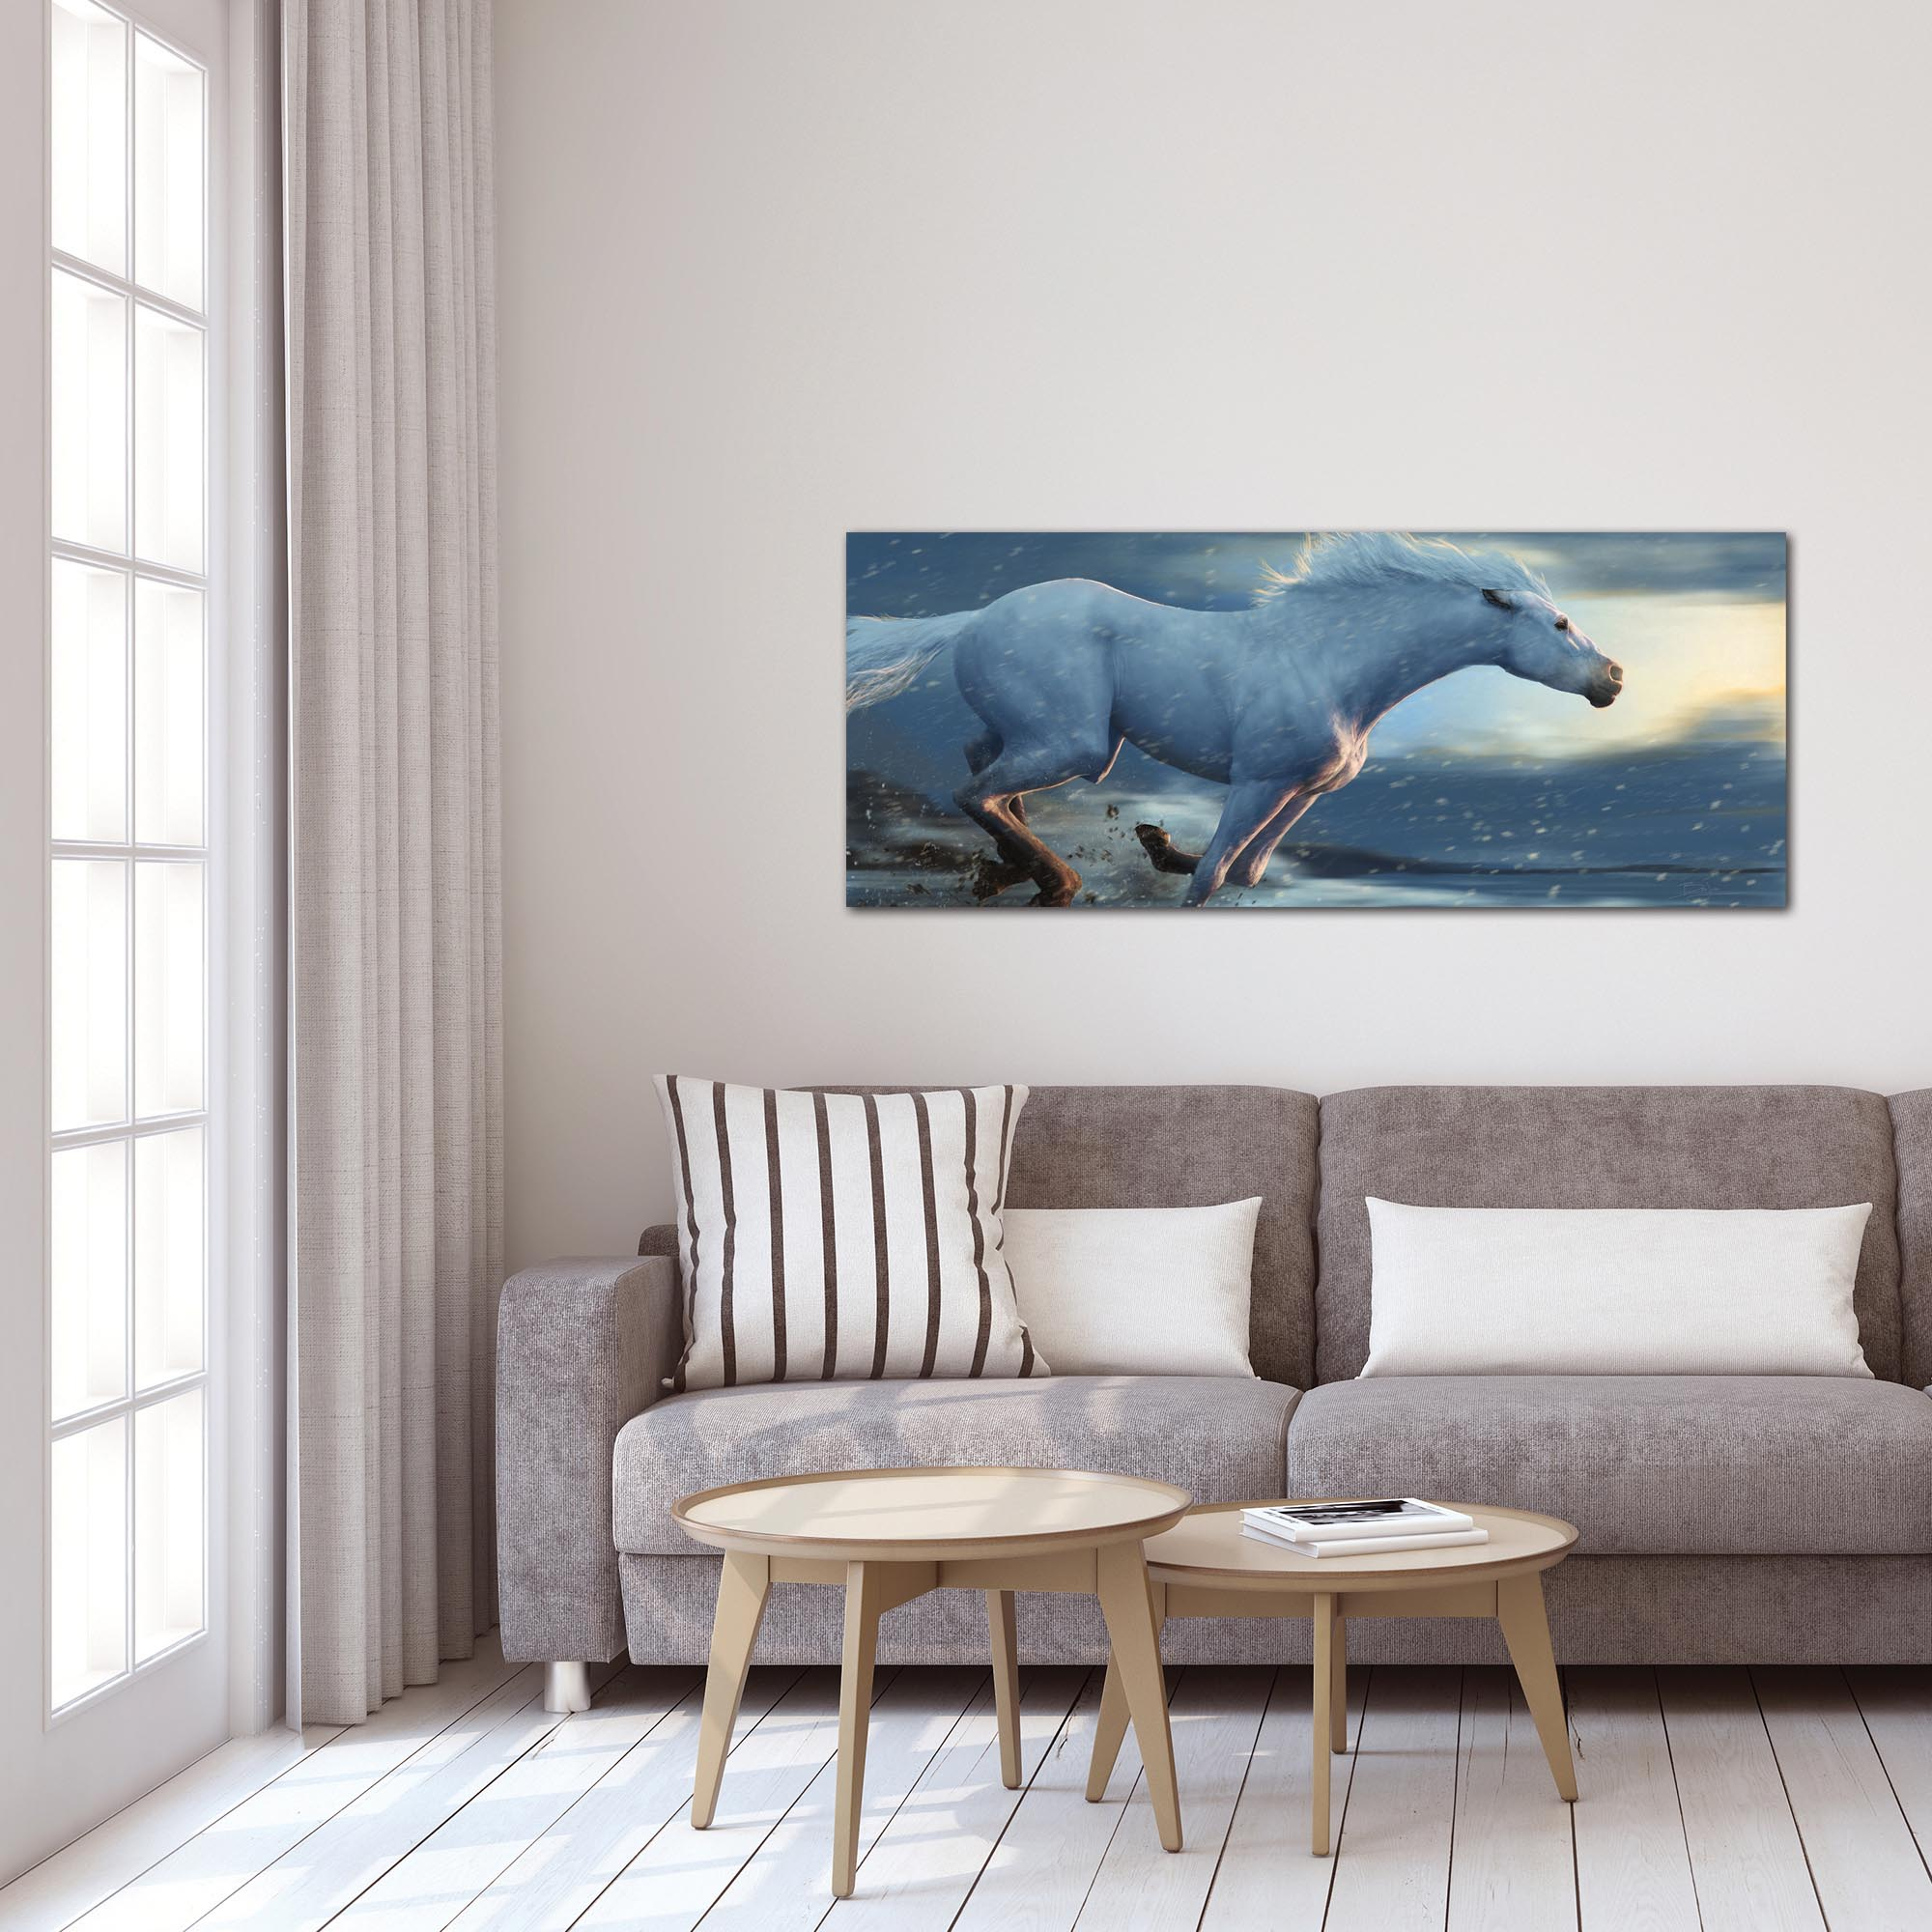 Expressionist Wall Art 'Running Horse' - Wildlife Decor on Metal or Plexiglass - Lifestyle View